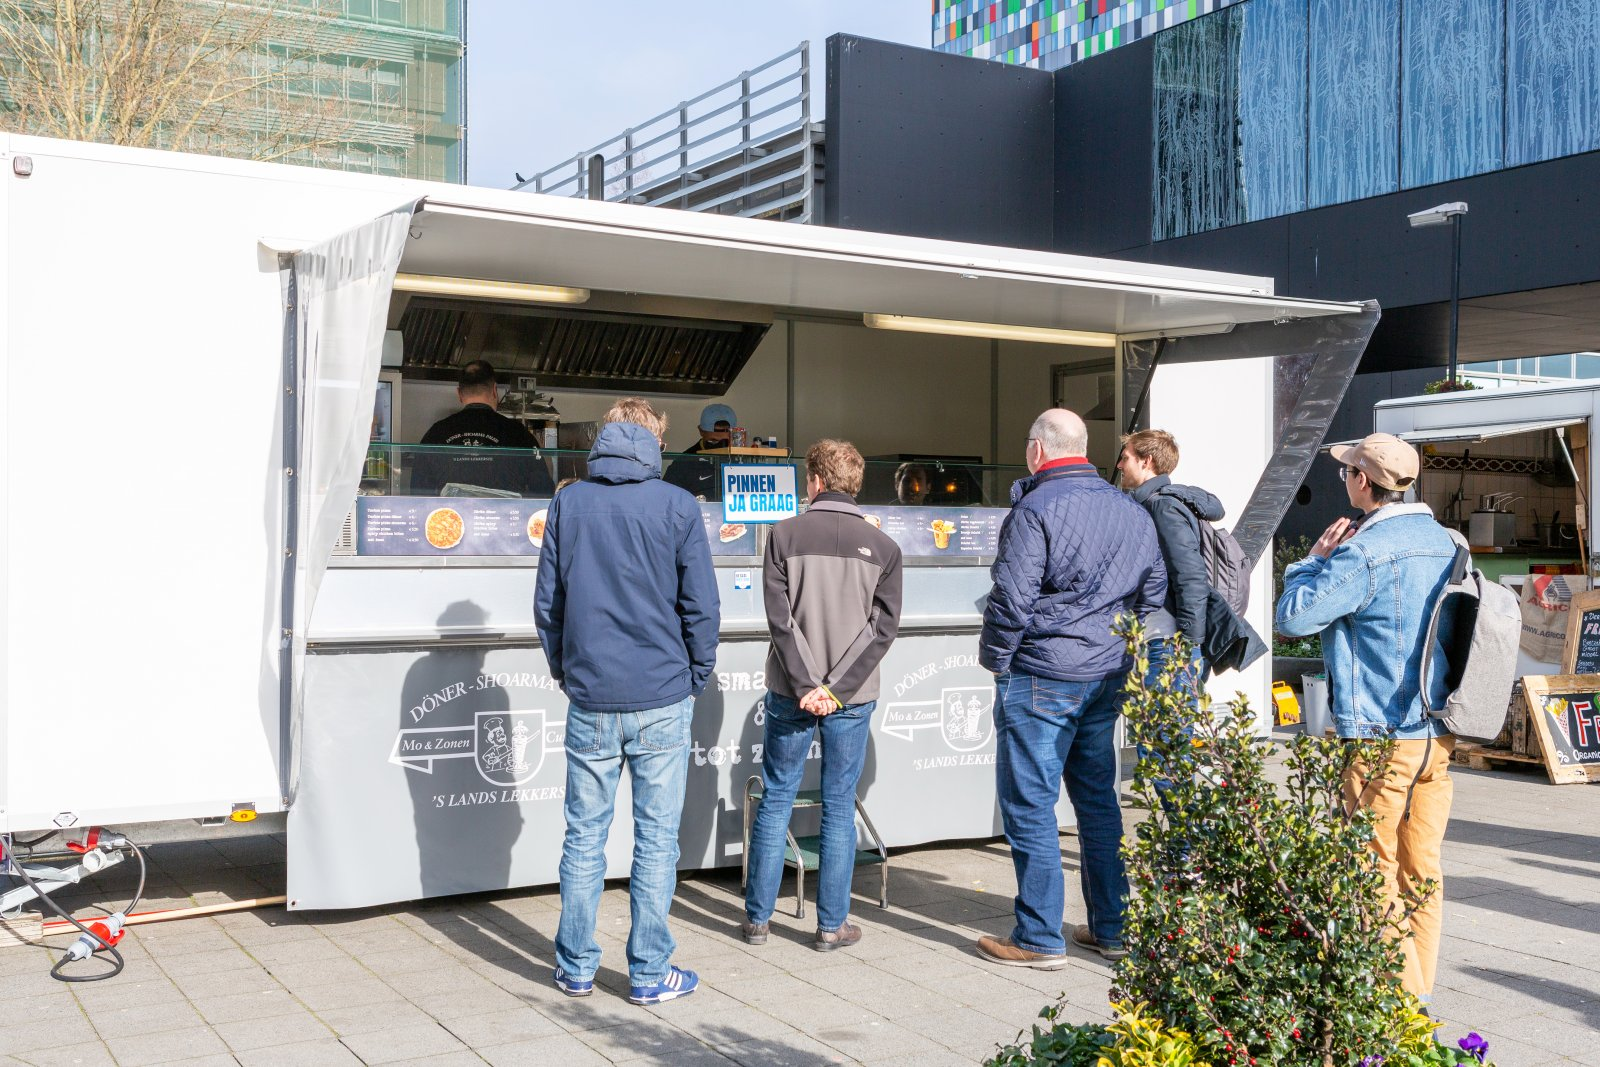 Foodtruck Mo en zonen